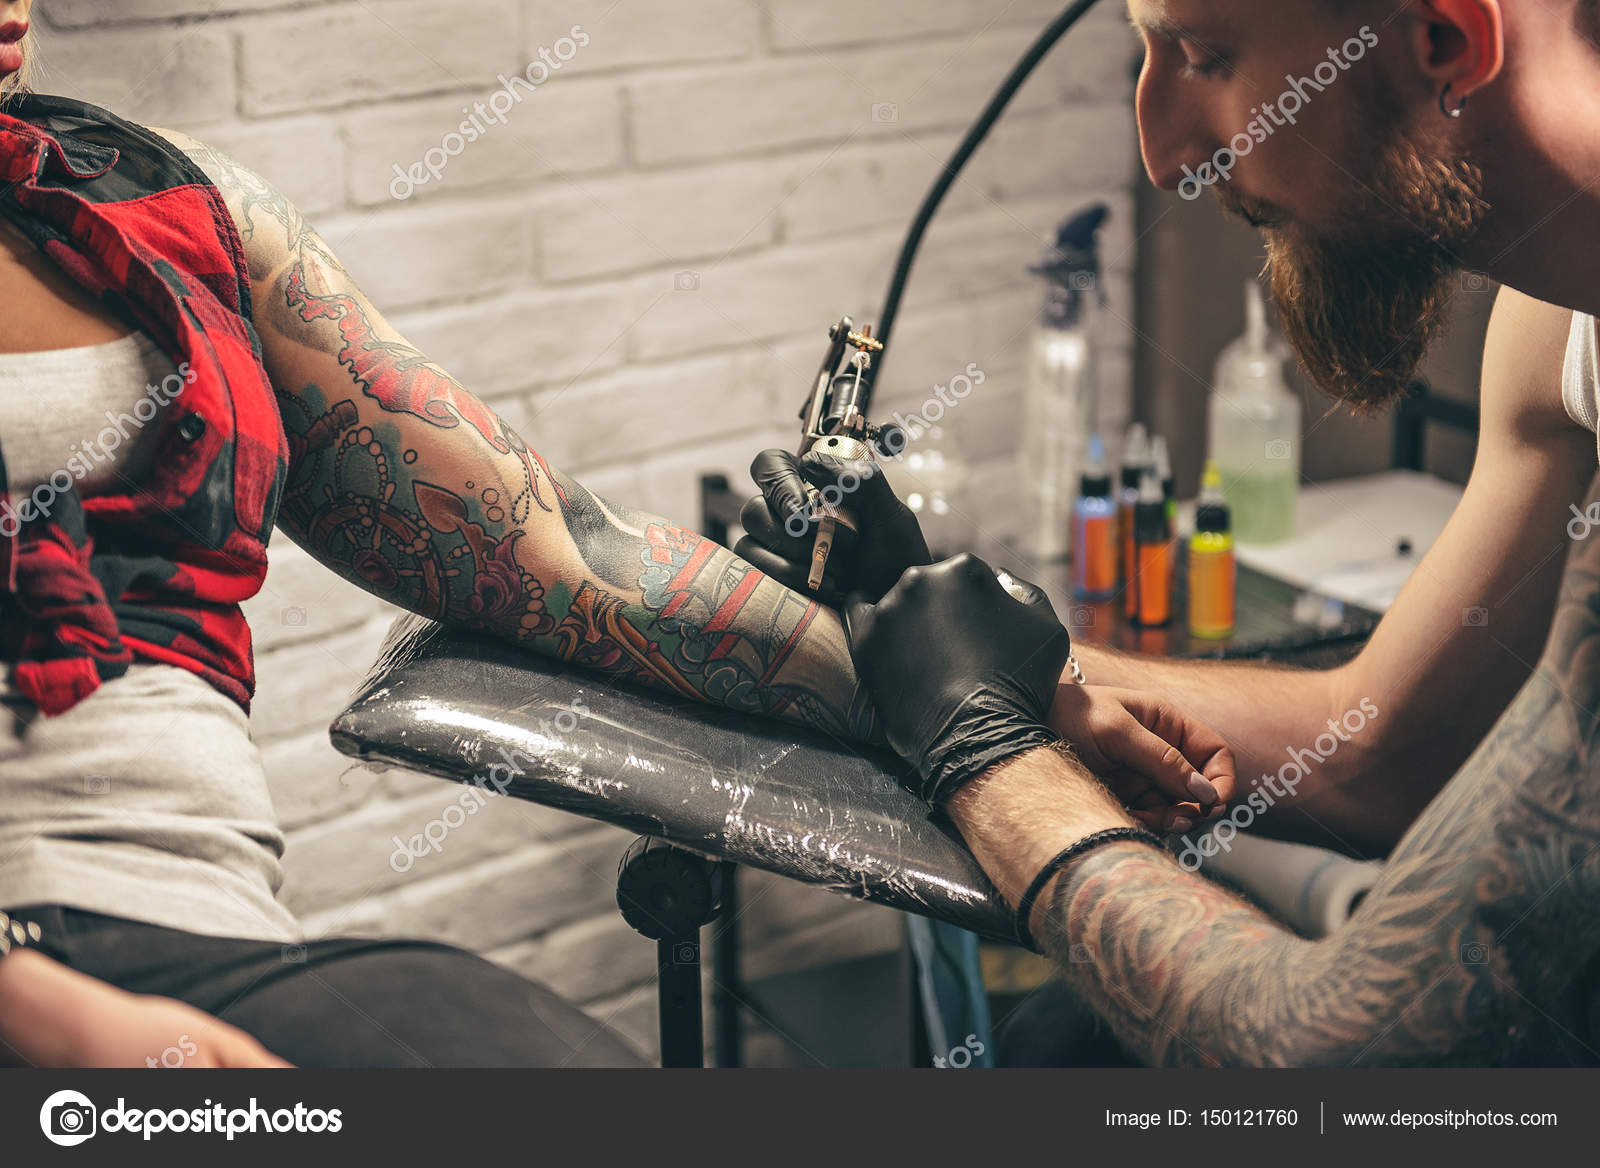 depositphotos_150121760-stock-photo-calm-man-making-tattoo-on.jpg